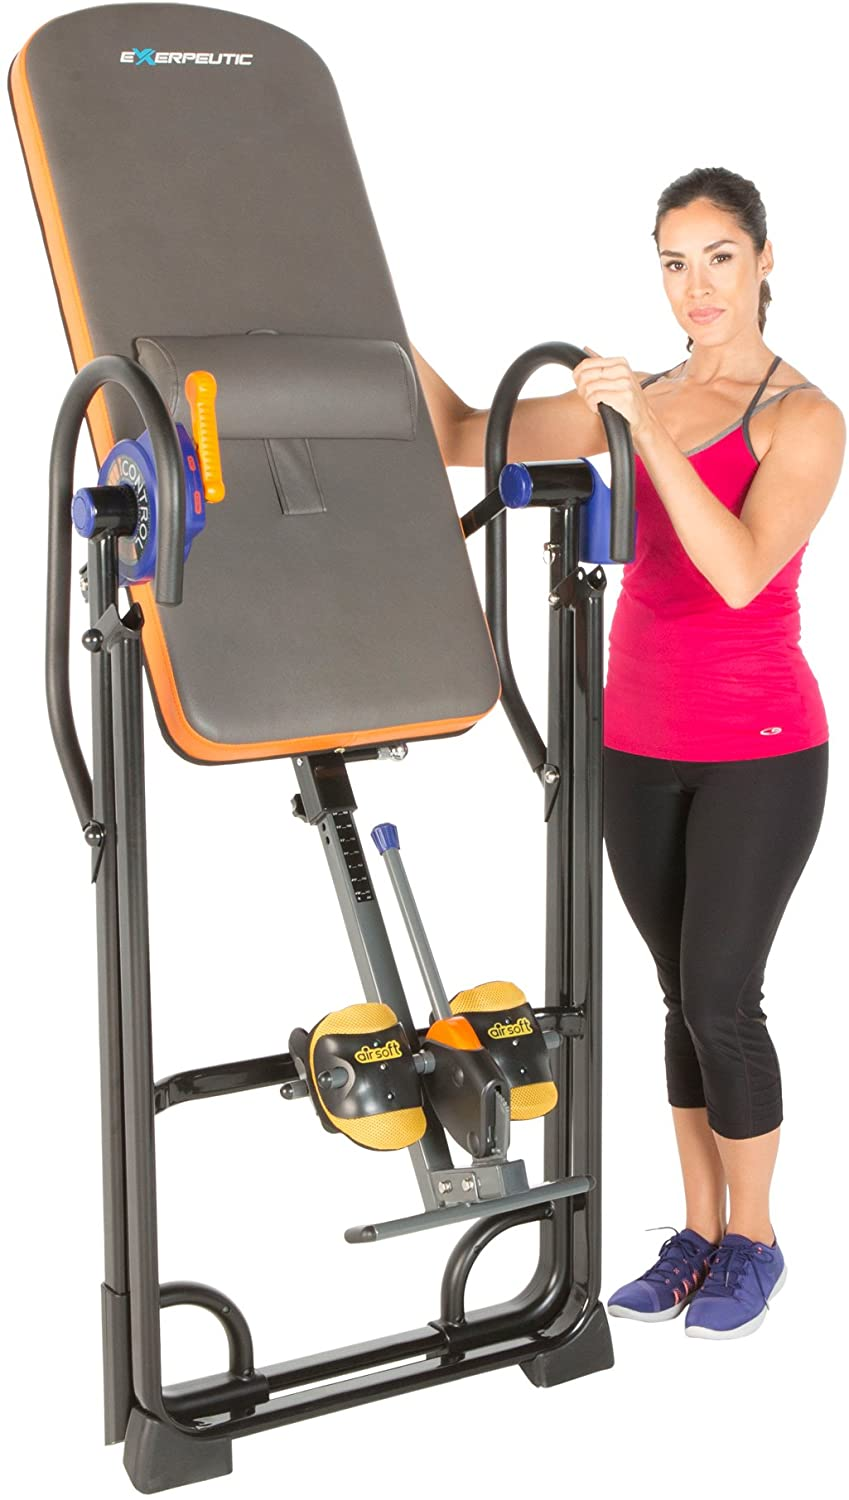 Exerpeutic 975SL Heavy Duty Inversion Table